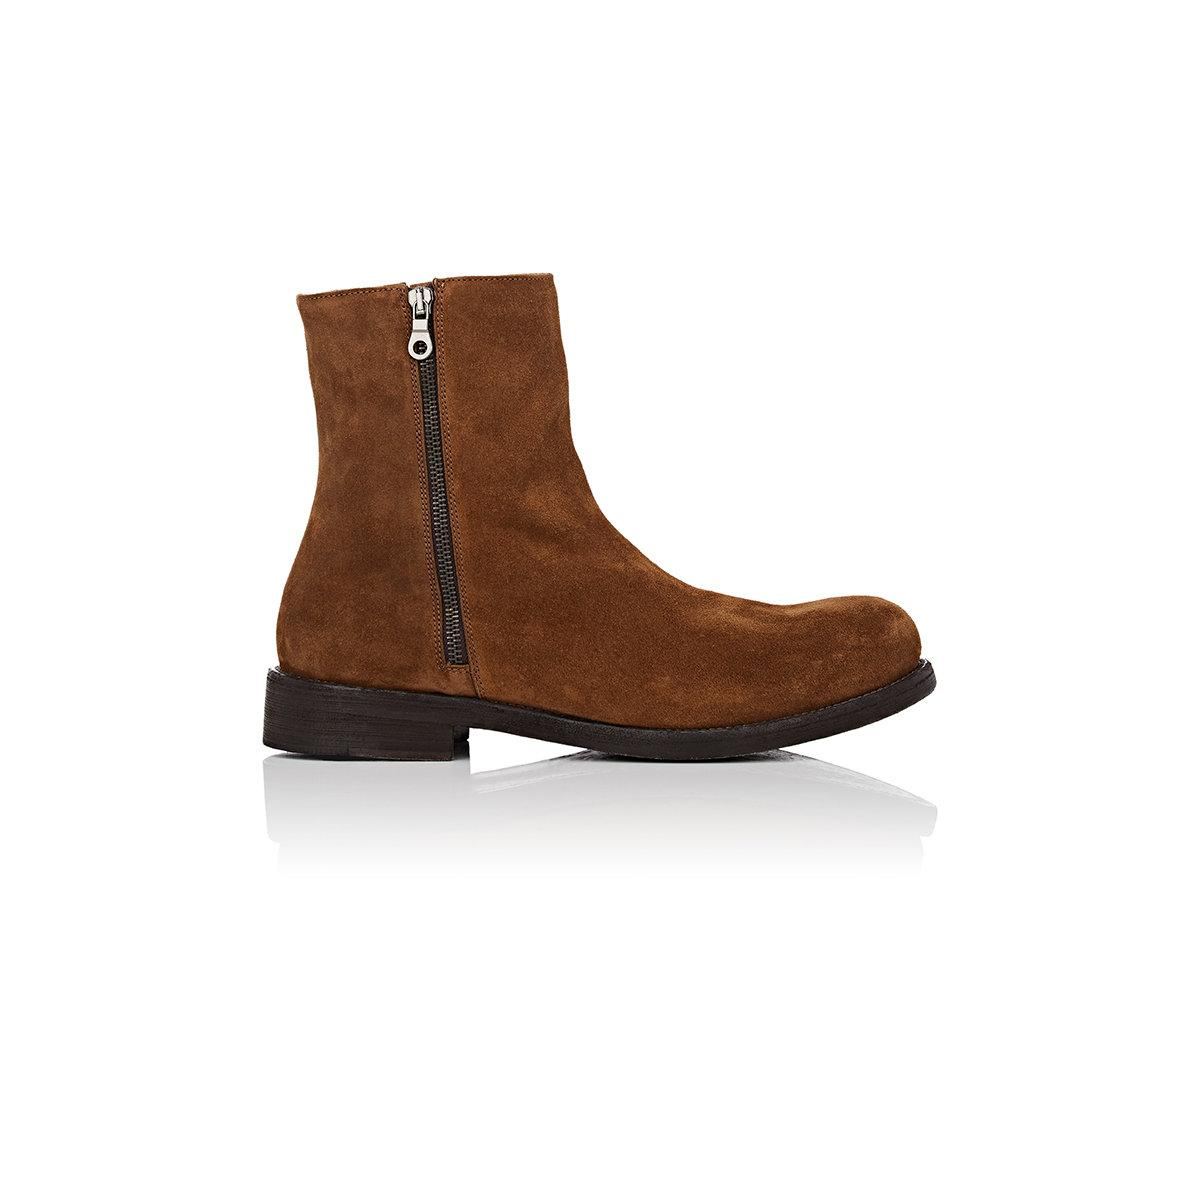 barneys new york suede ankle boots in brown lyst